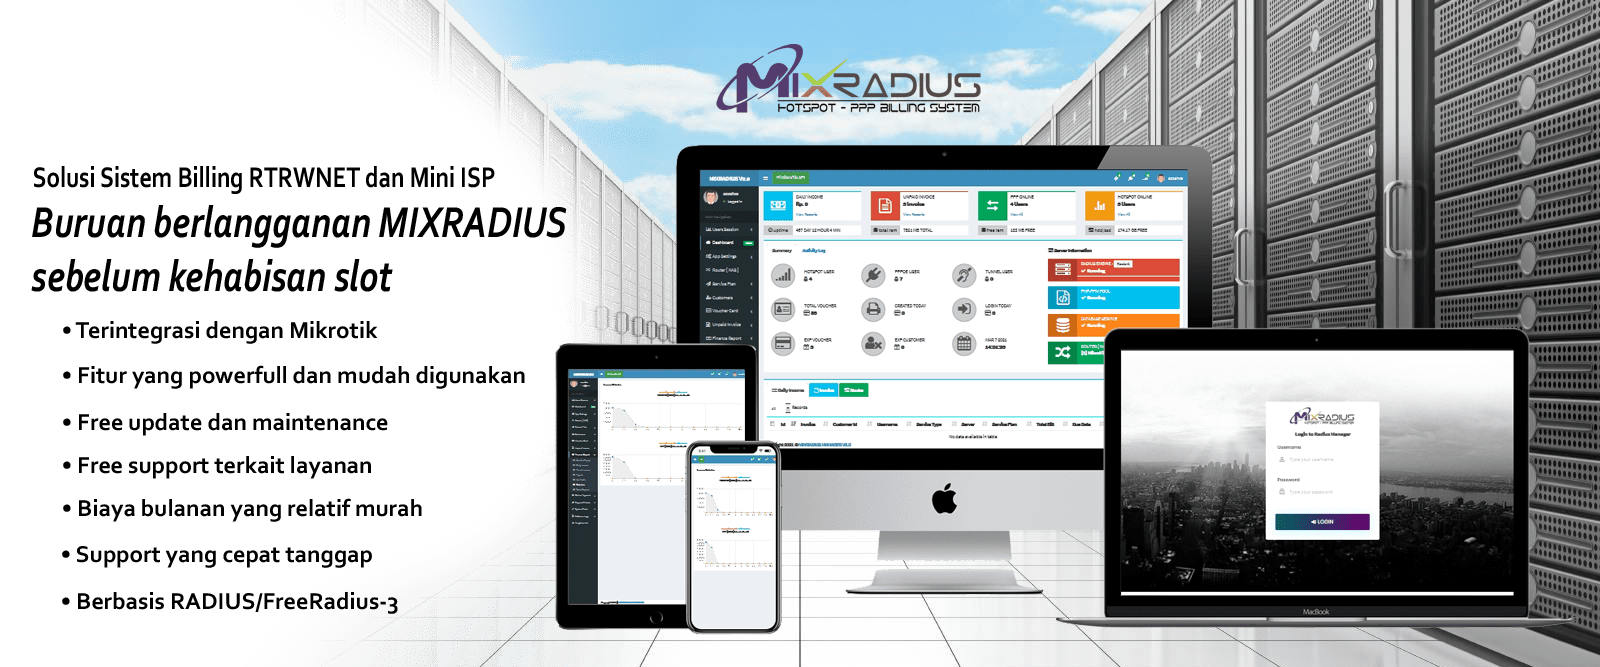 Cloud Mixradius